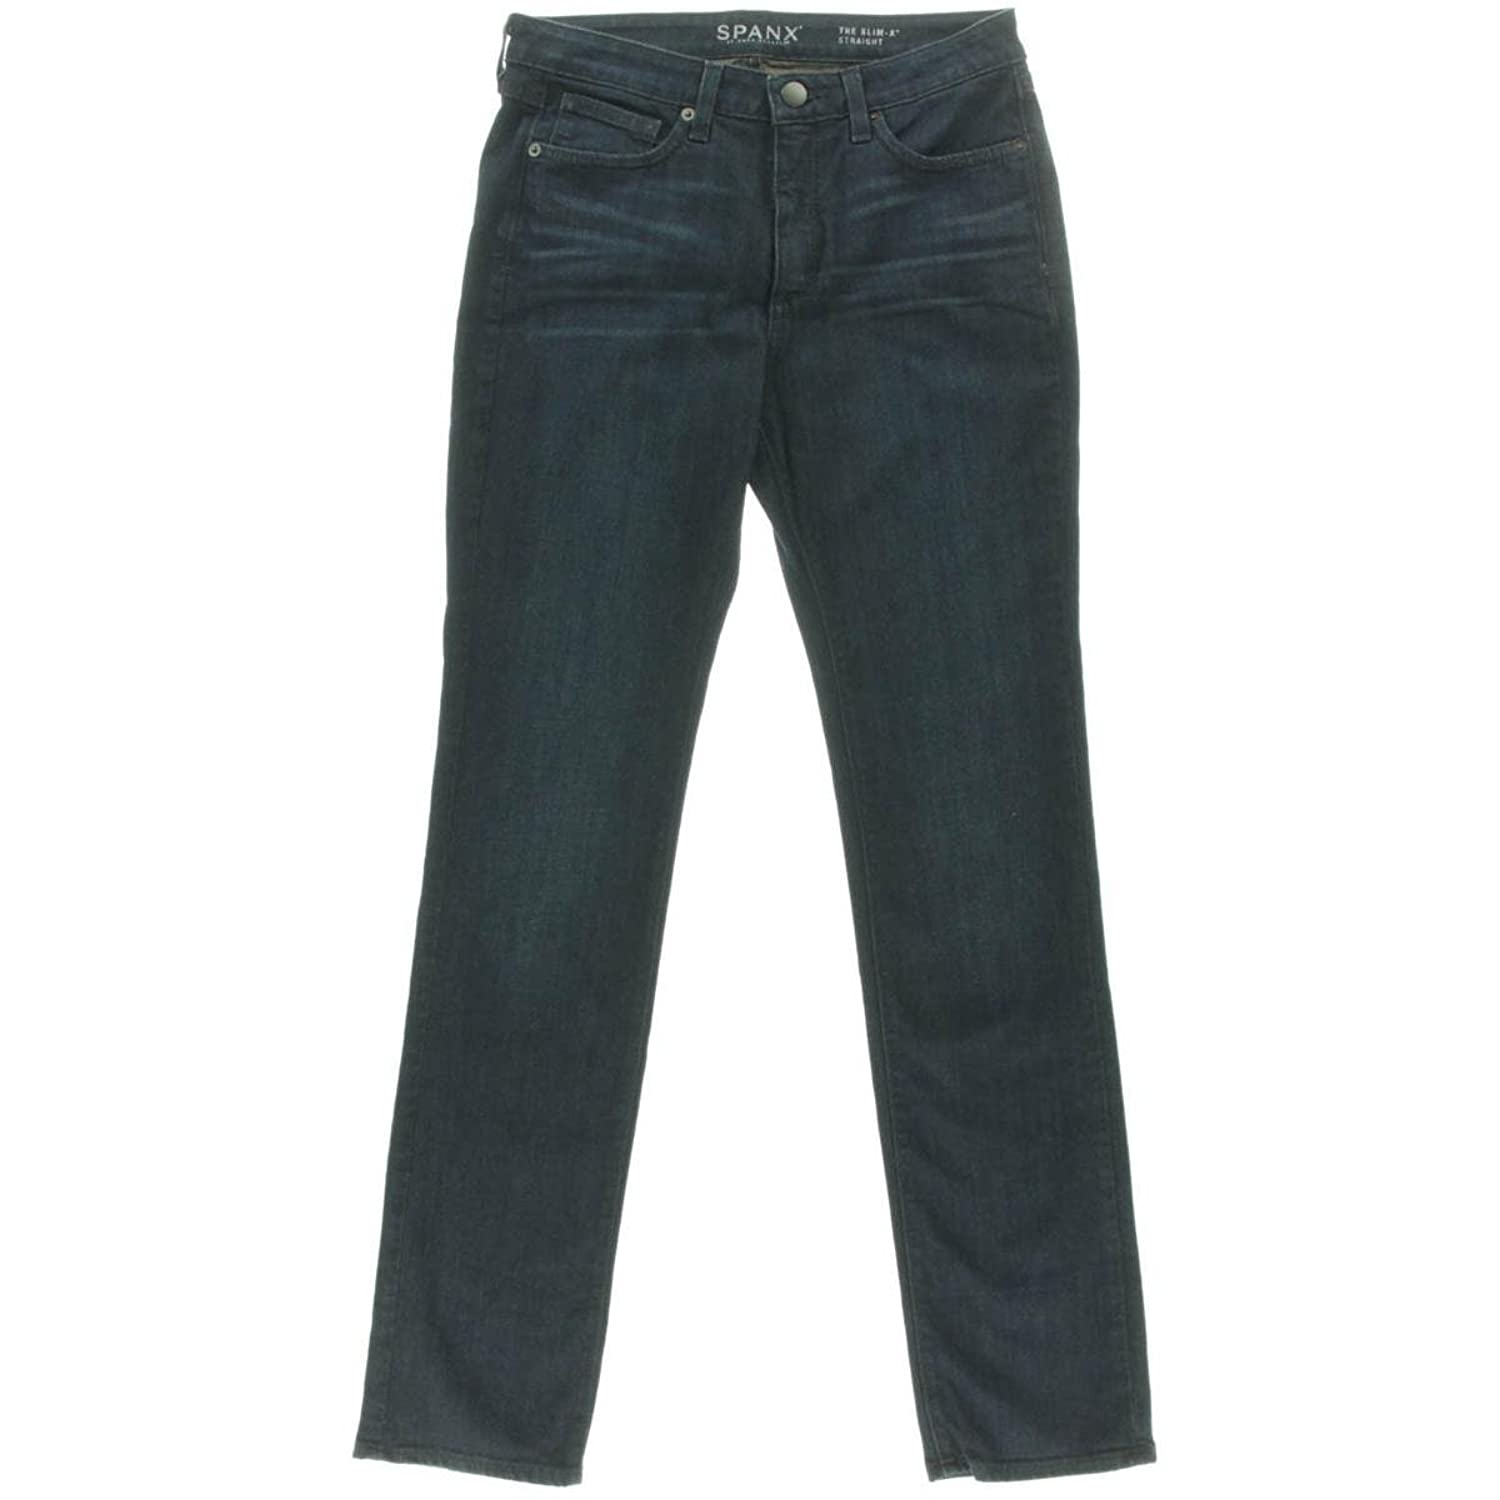 SPANX Womens The Slim@X Straight Leg Jeans